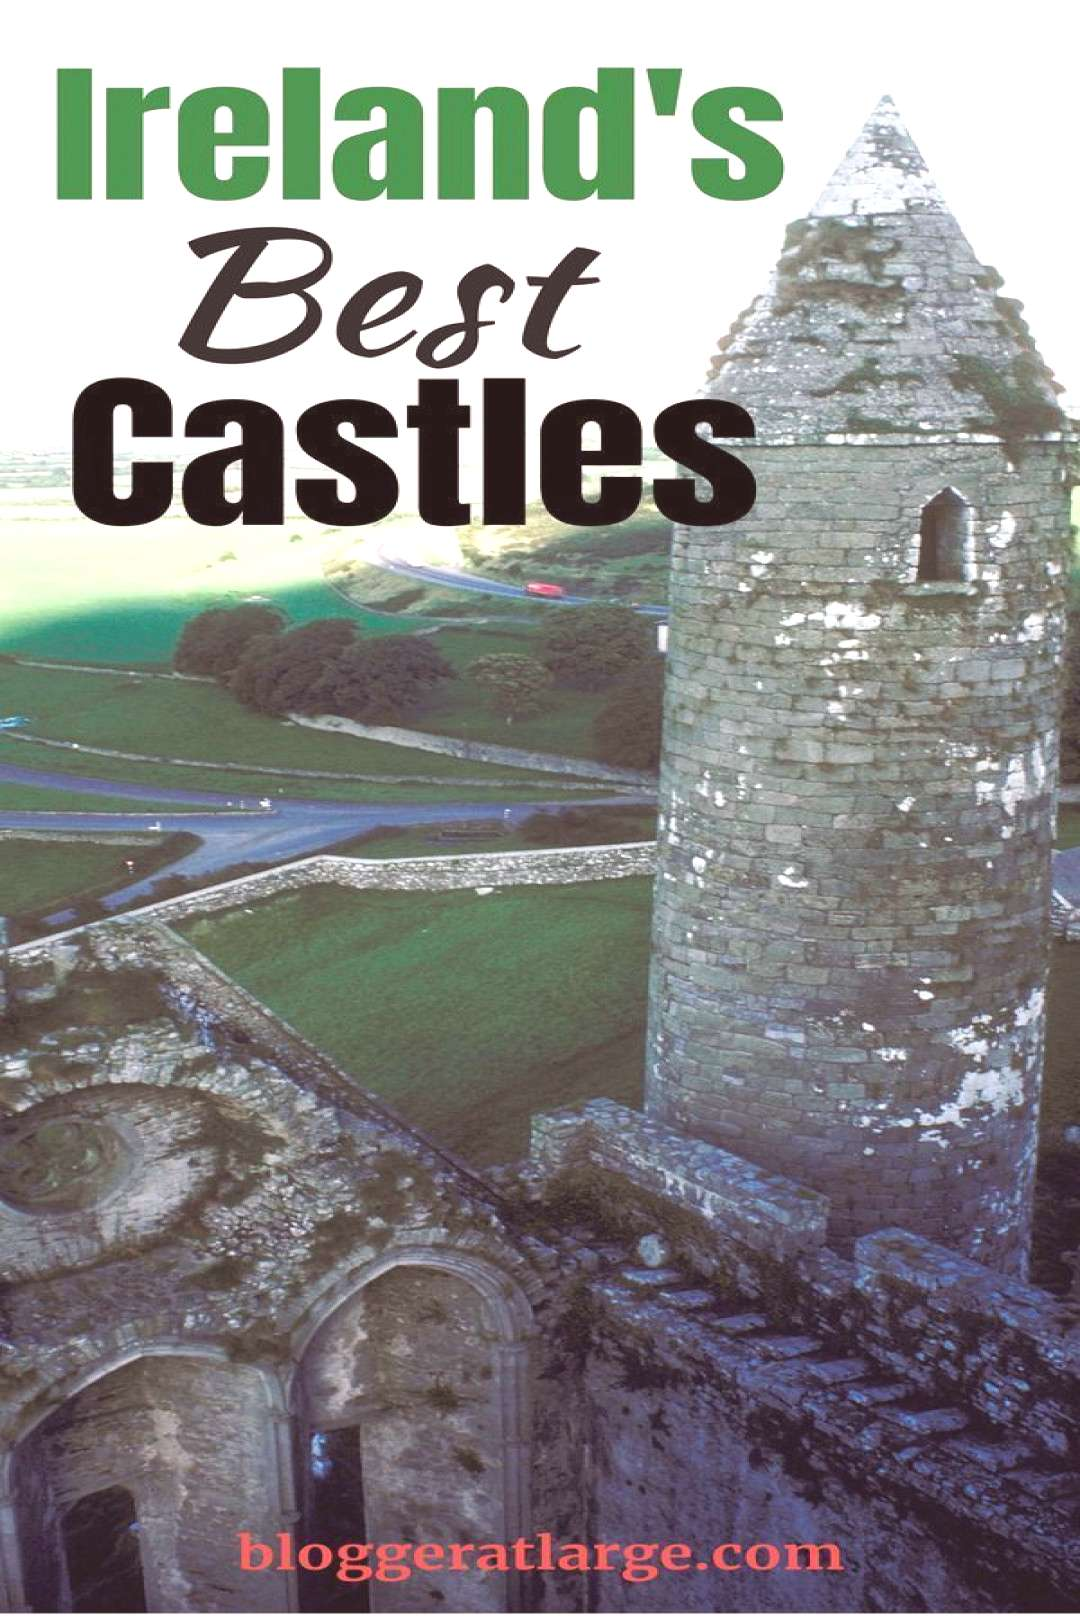 8 must-see castles in Ireland Visit Ireland's Best Castles on your next visit.